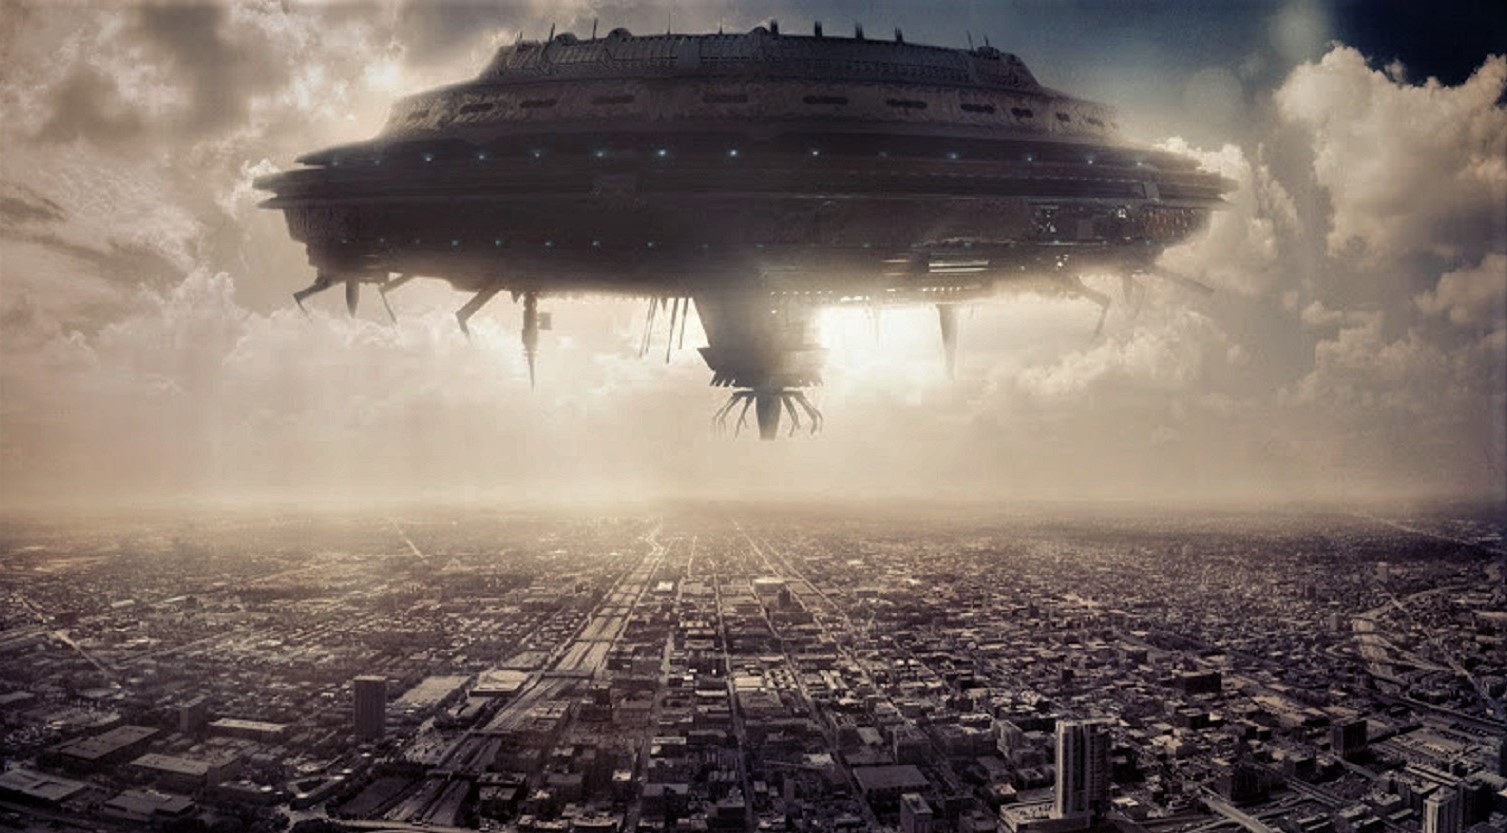 UFO sightings during confinement: Are they preparing us for something? 31